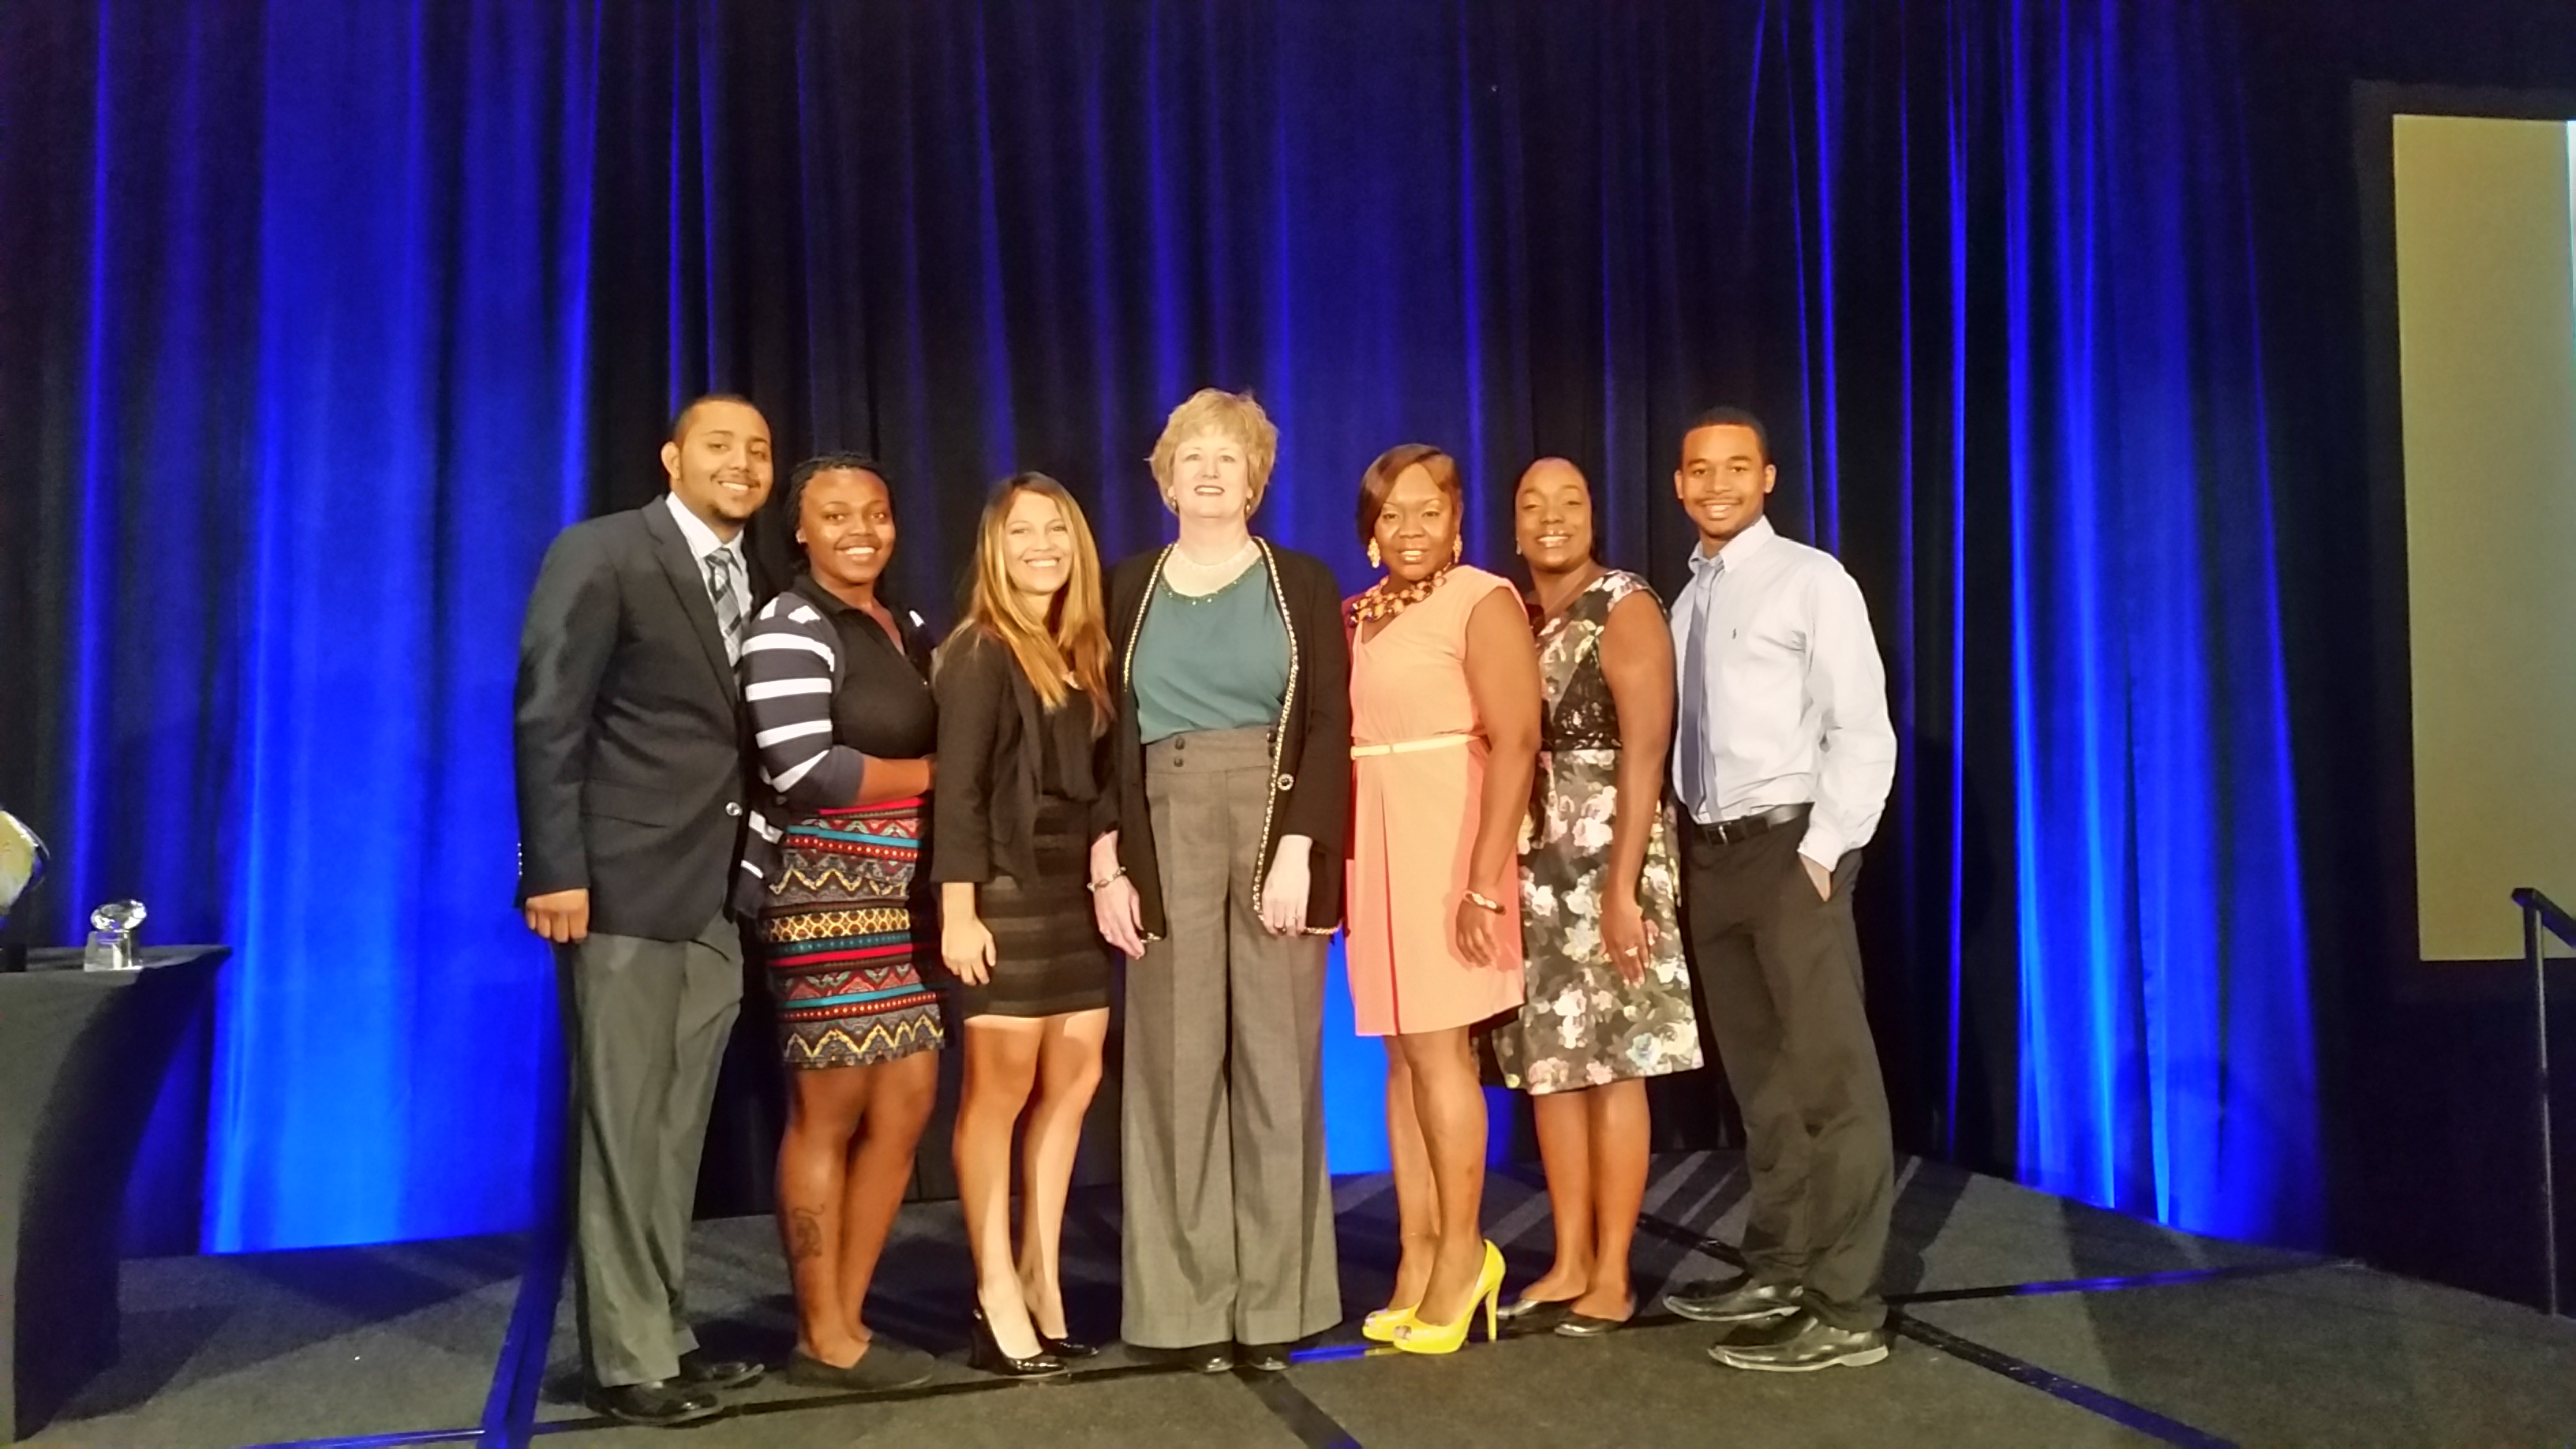 AFP members volunteered at the Greater Dallas chapter's 30th Anniversary National Philanthropy Day--a celebration honoring business, foundation, civic and charitable change-agents presented by KERA.  L to R:  Jabari La Chaux, Jazzy Williams, Alyssa Avila, Karen Martin, Shanay Wise, Jerrica Weeks-Thomas, Isaiah Stanton